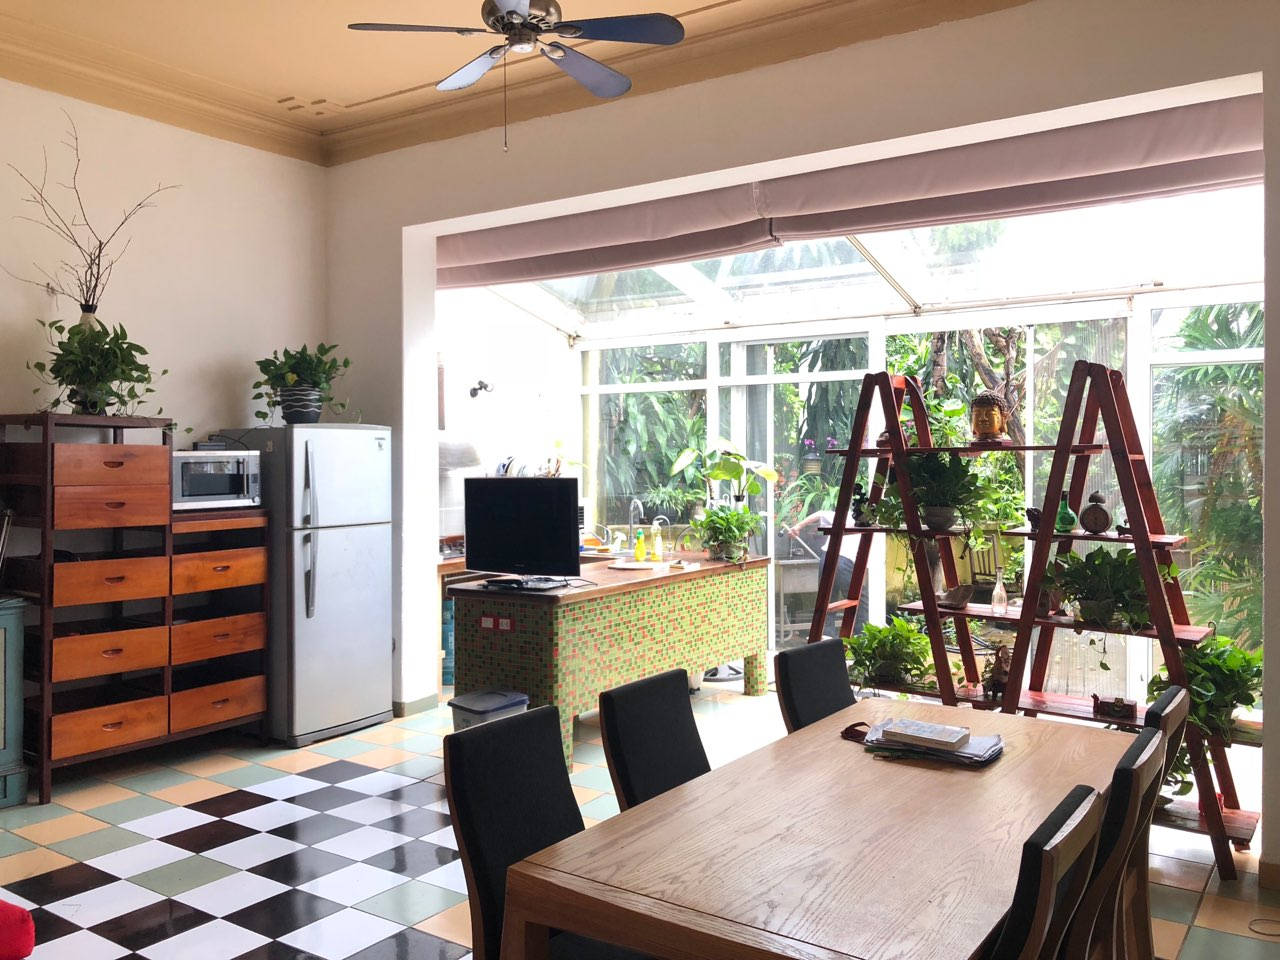 Gardening house for rent in Au Co, near Xuan Dieu str, Tay Ho distr!